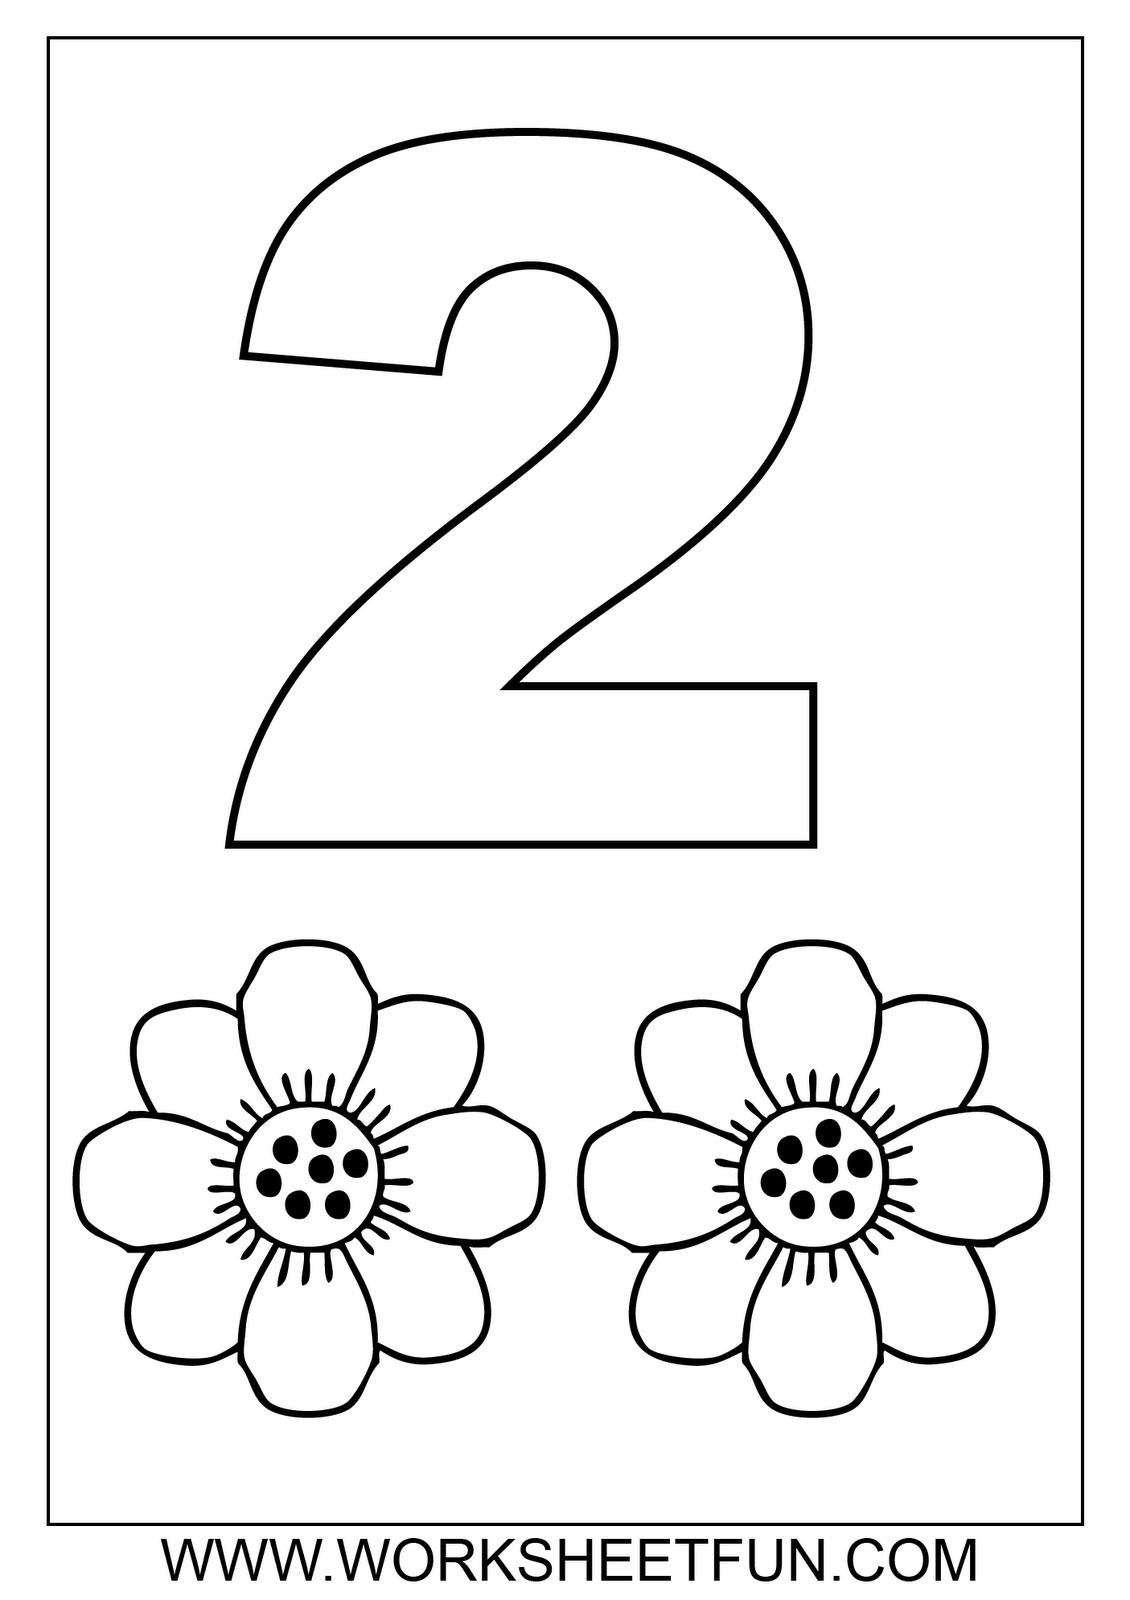 Preschool Number Coloring Pages – Toddler Worksheets